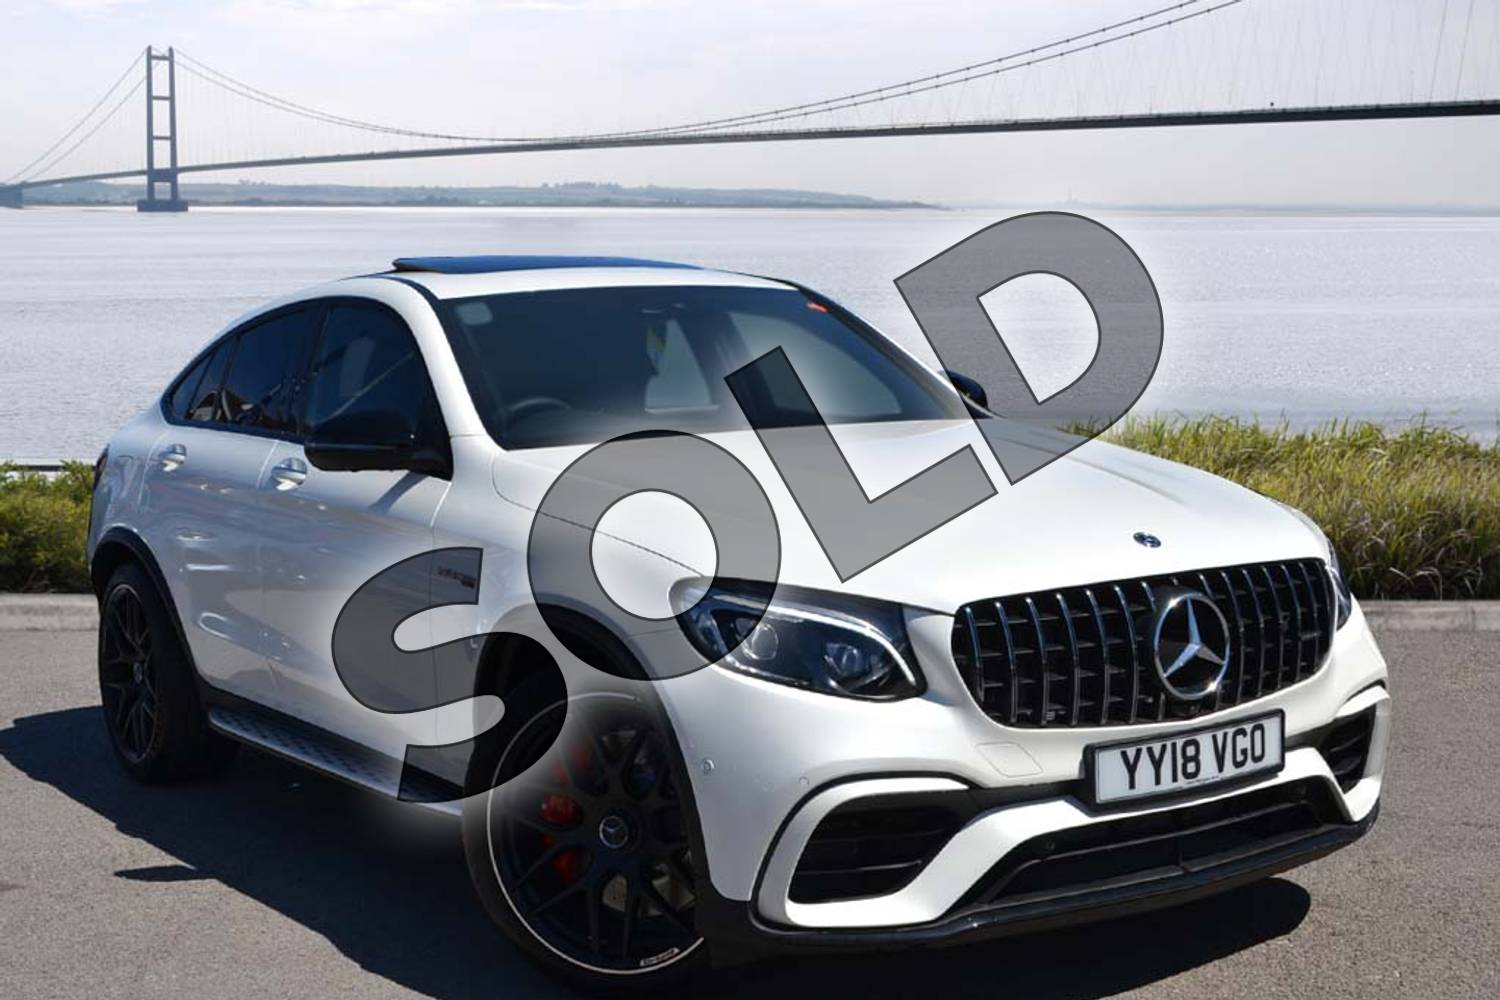 2018 Mercedes-Benz GLC AMG Coupe GLC AMG GLC 63 S 4Matic Premium 5dr 9G-Tronic in designo diamond white bright at Mercedes-Benz of Hull